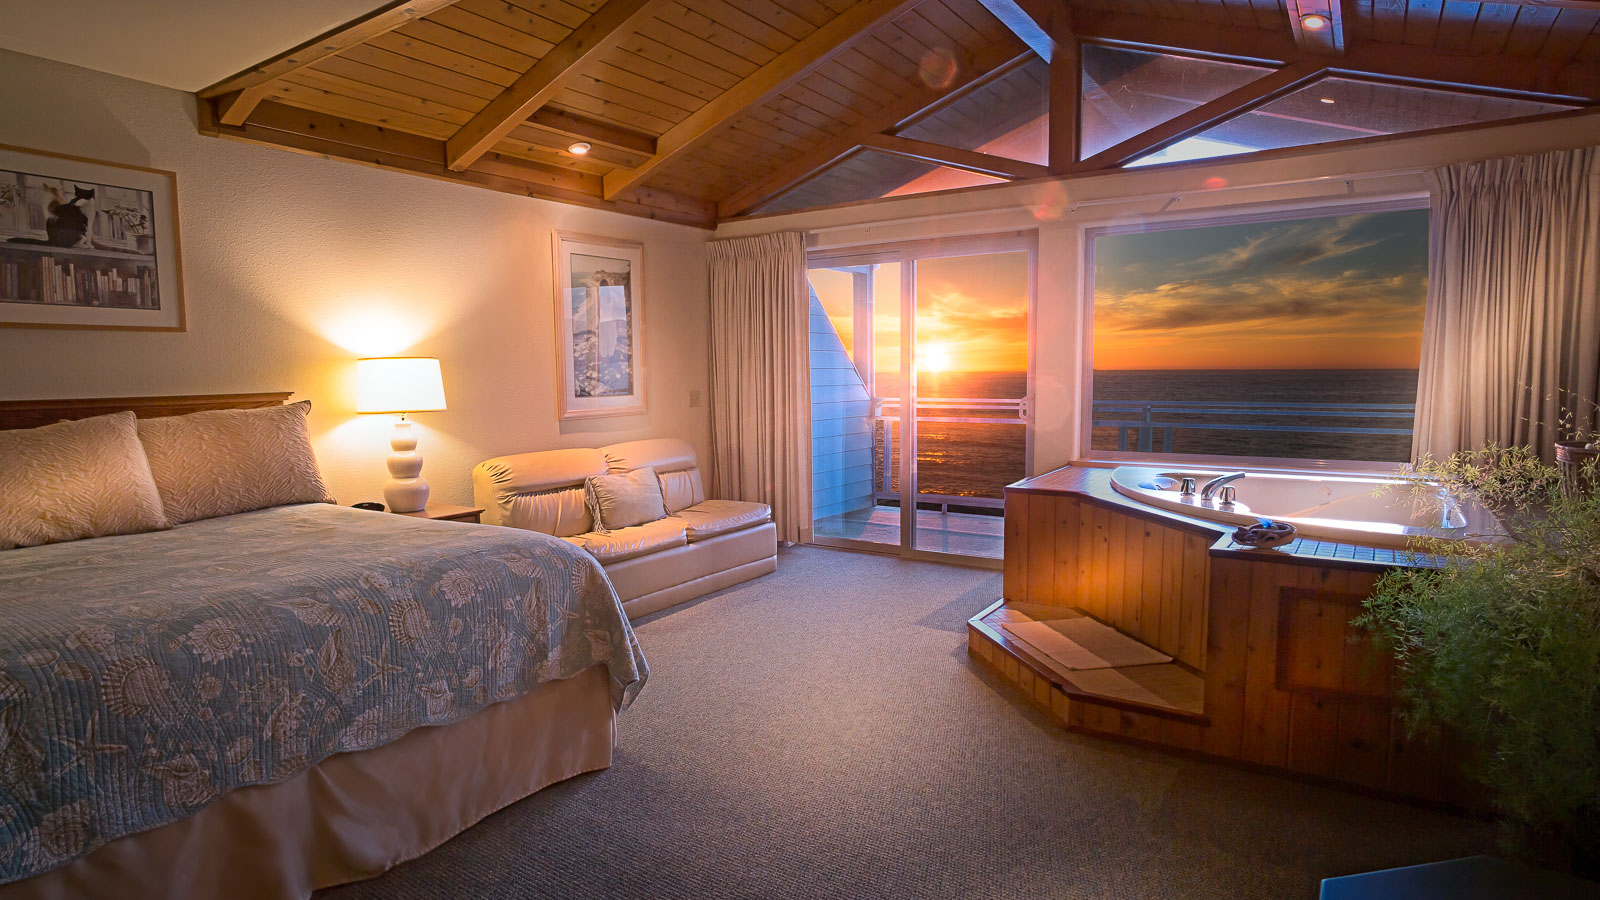 hotel rooms Accommodations Deluxe Spa Suite 1